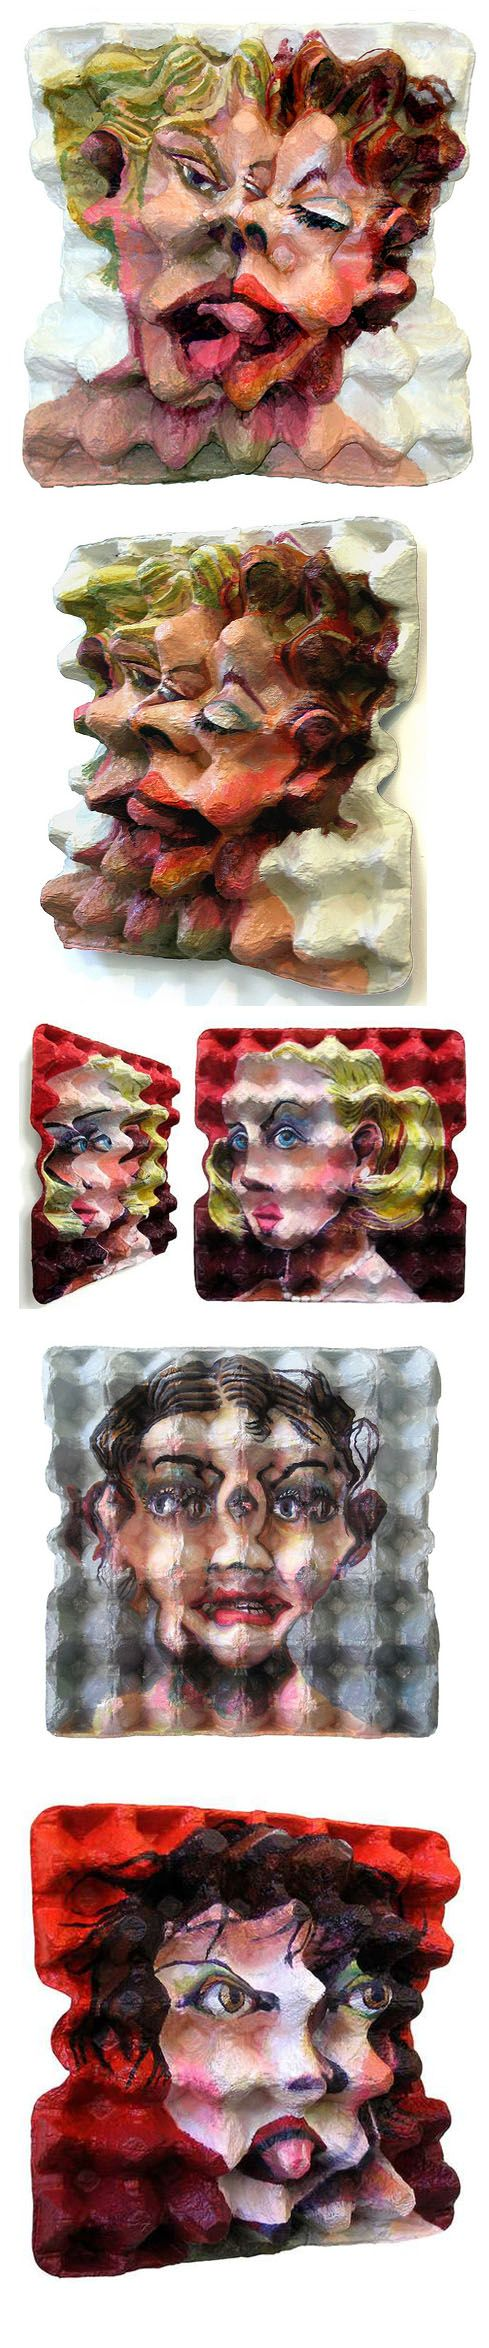 Egg container cubism: Portraits done on egg packaging, perspective changes when viewed from different angles